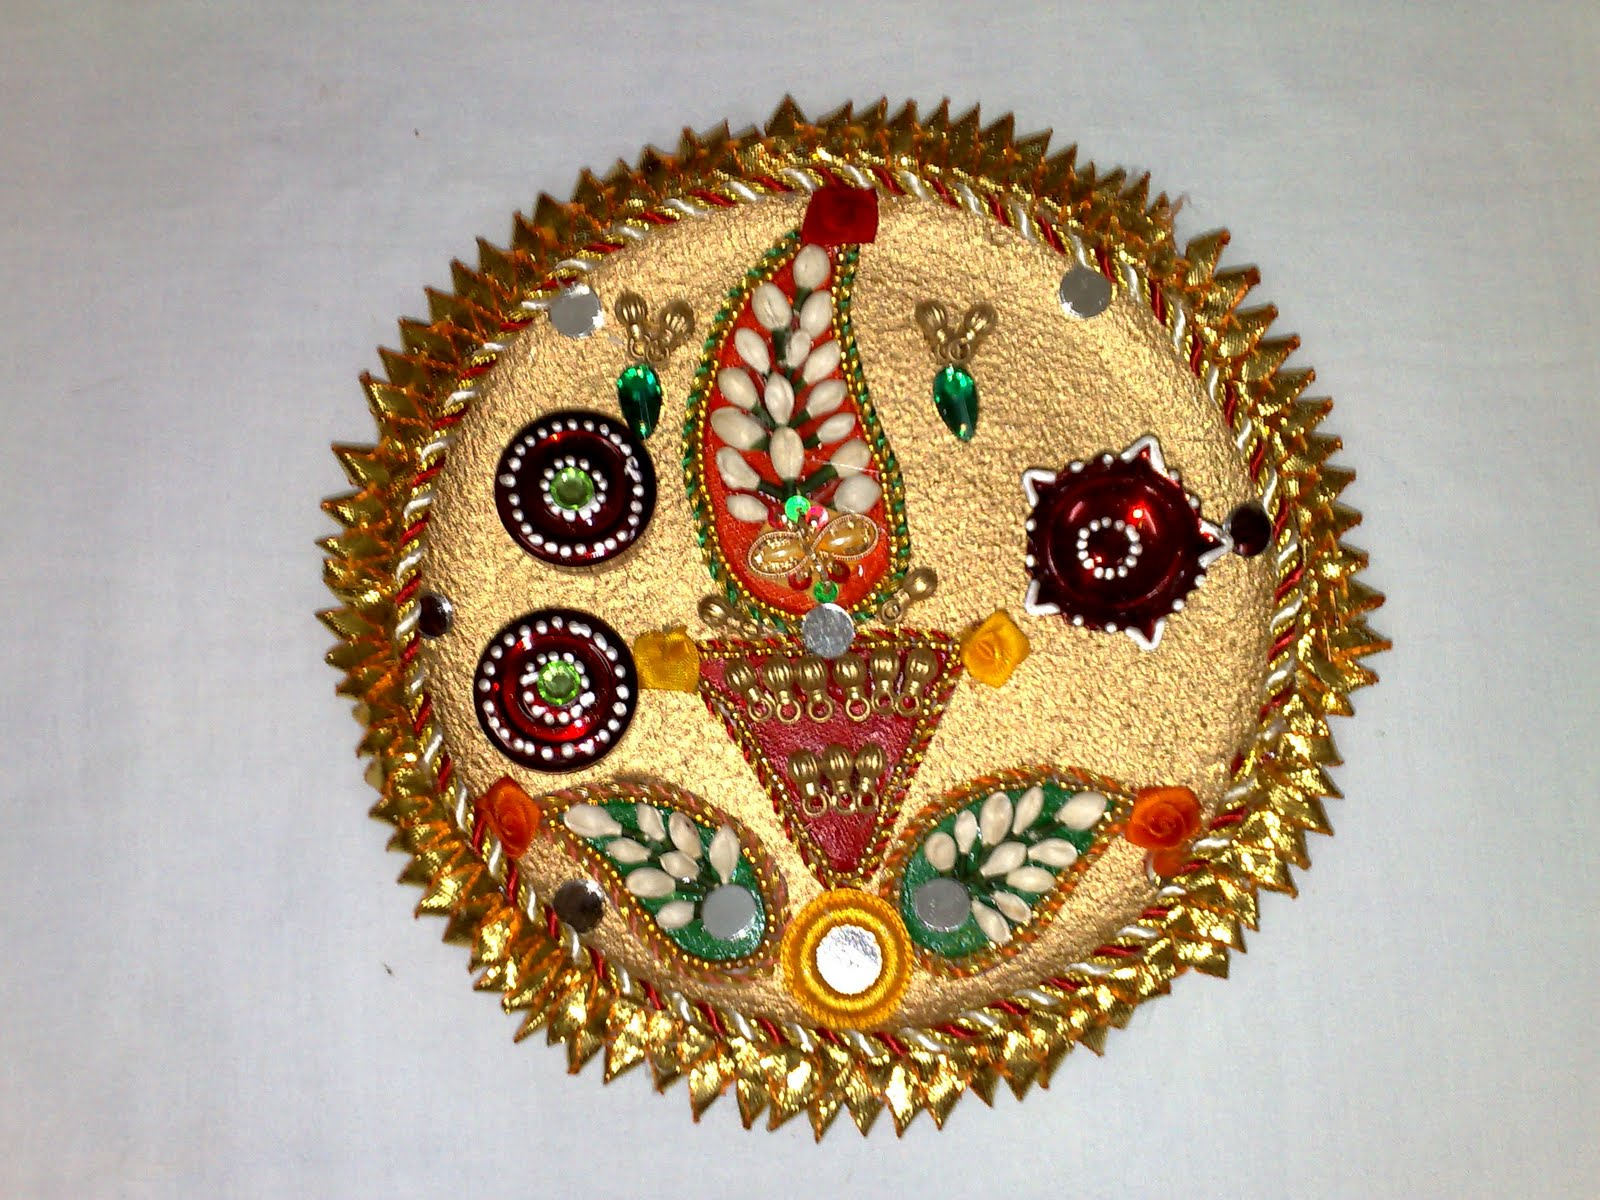 Thali aarti wedding decorative decorated for Aarti thali decoration designs